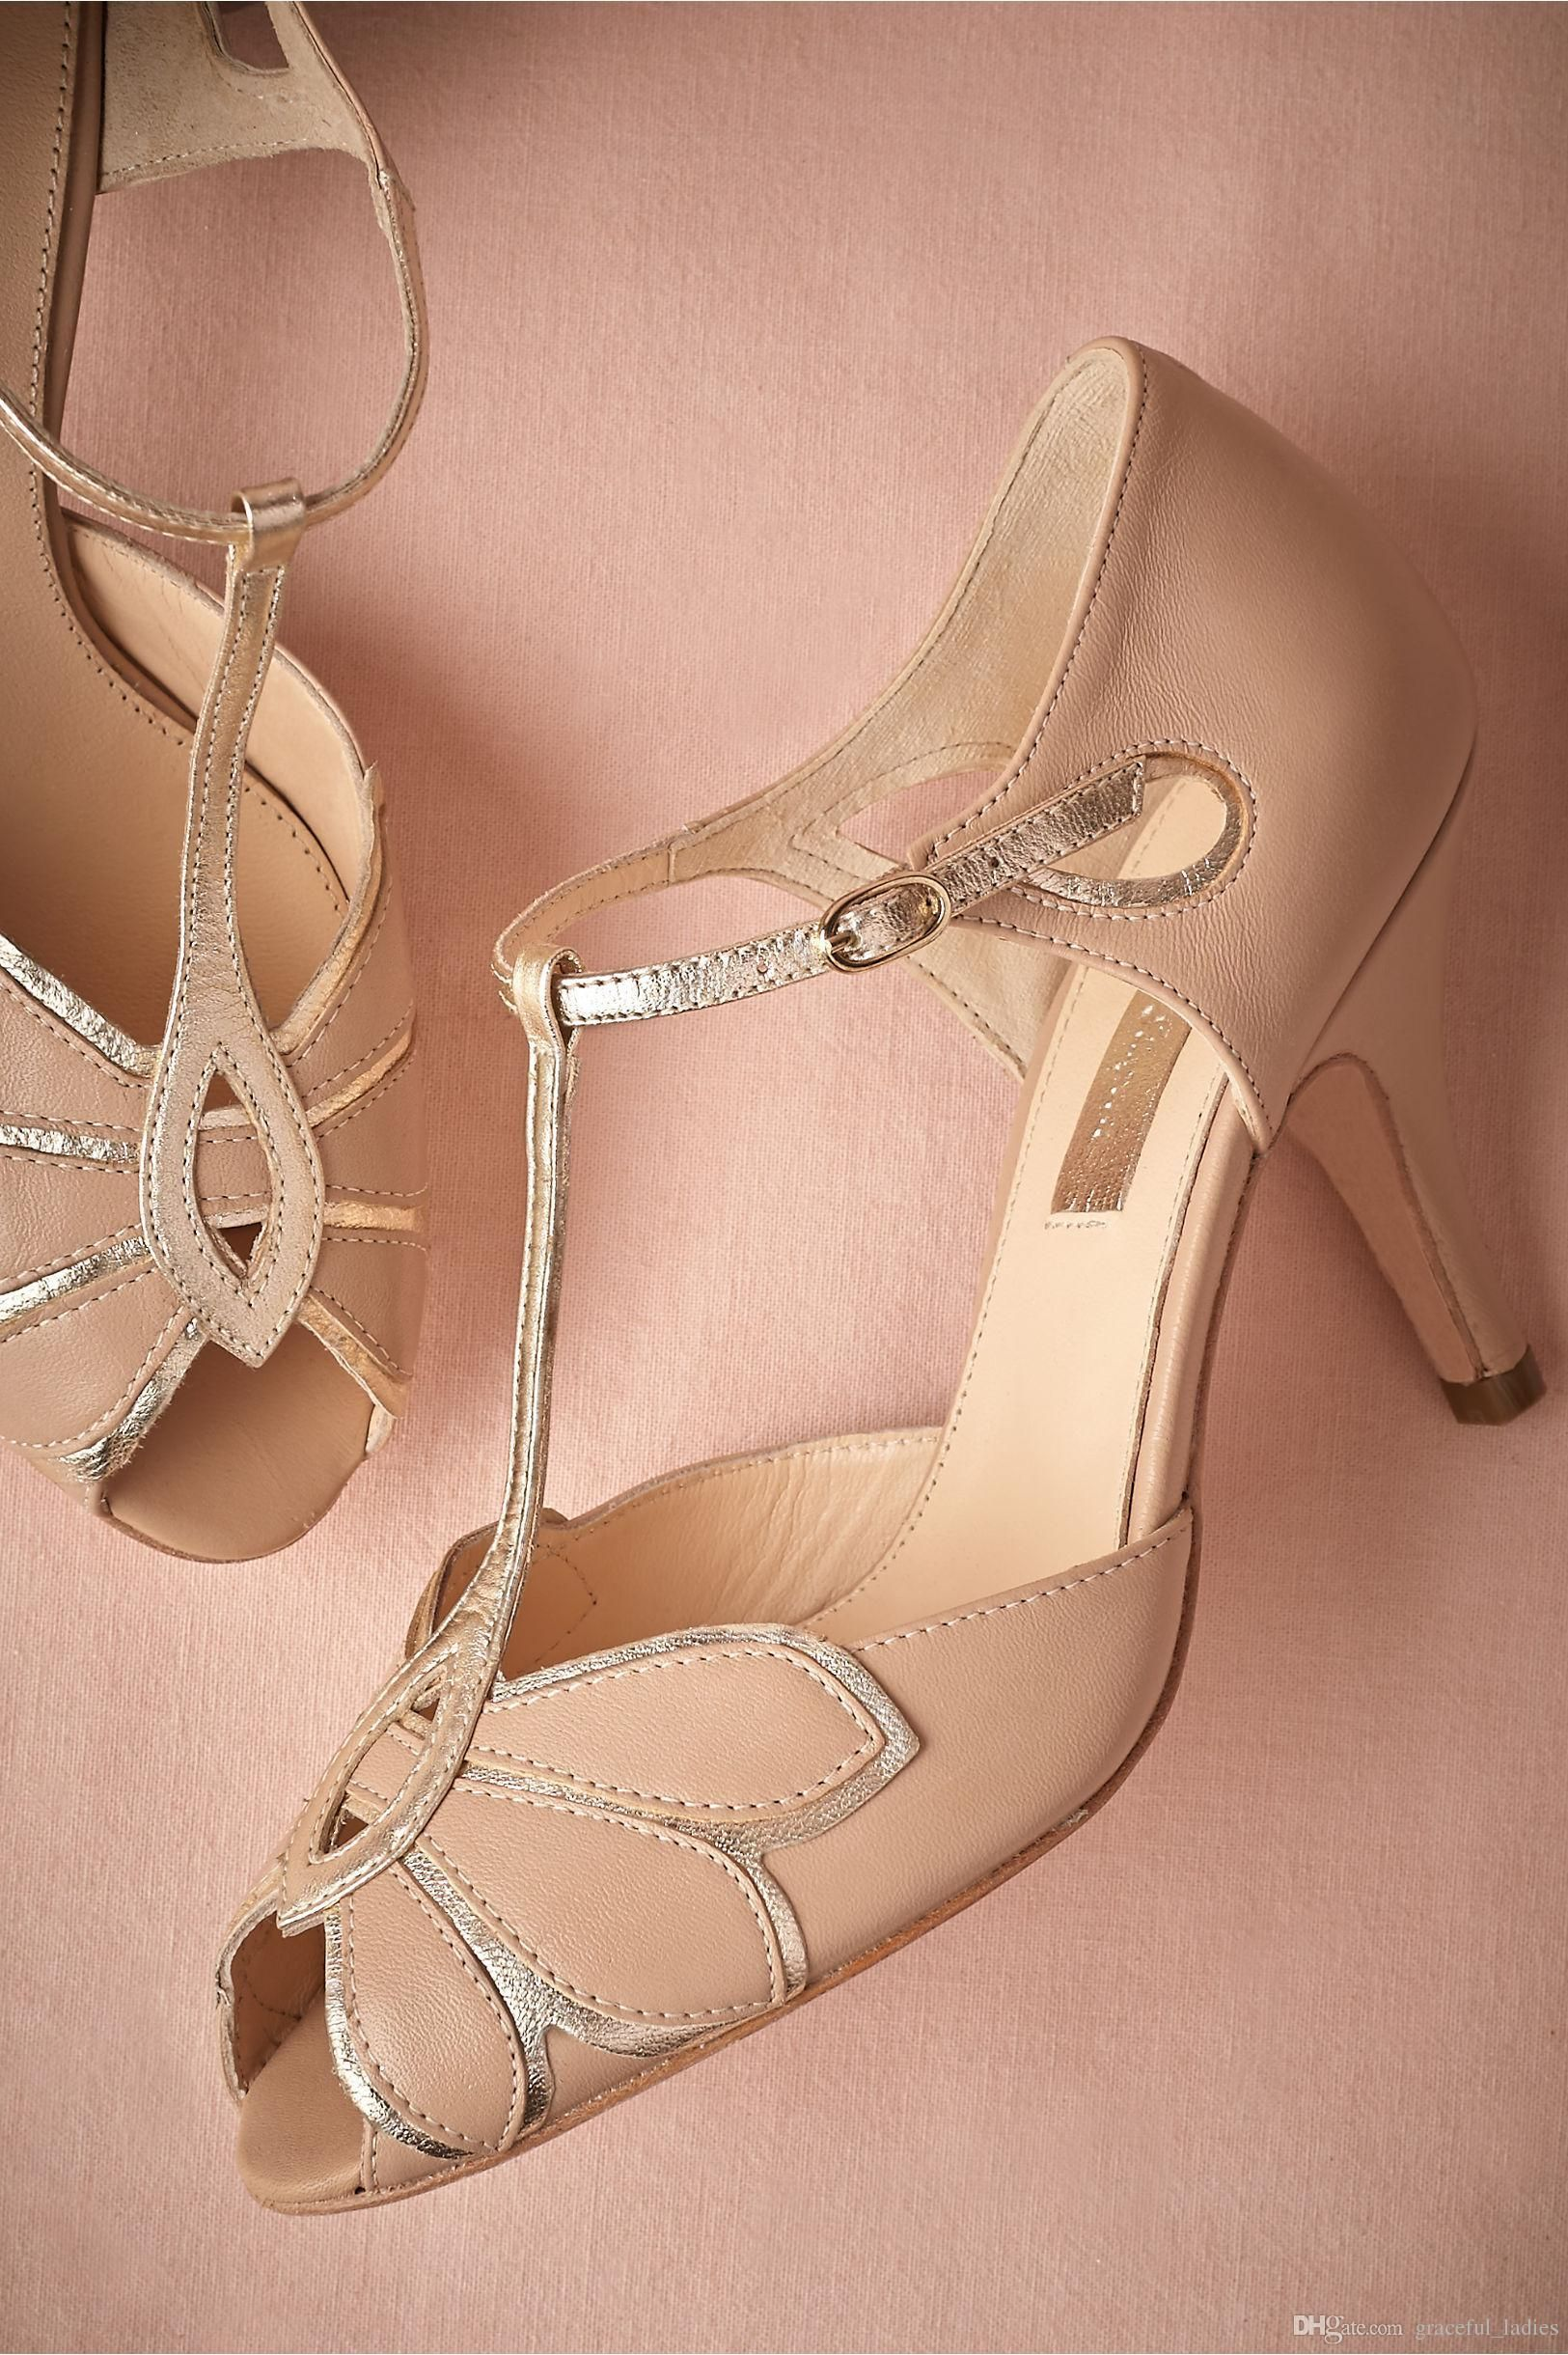 Blush pink vintage wedding shoes with a low heel and t-bar strap.